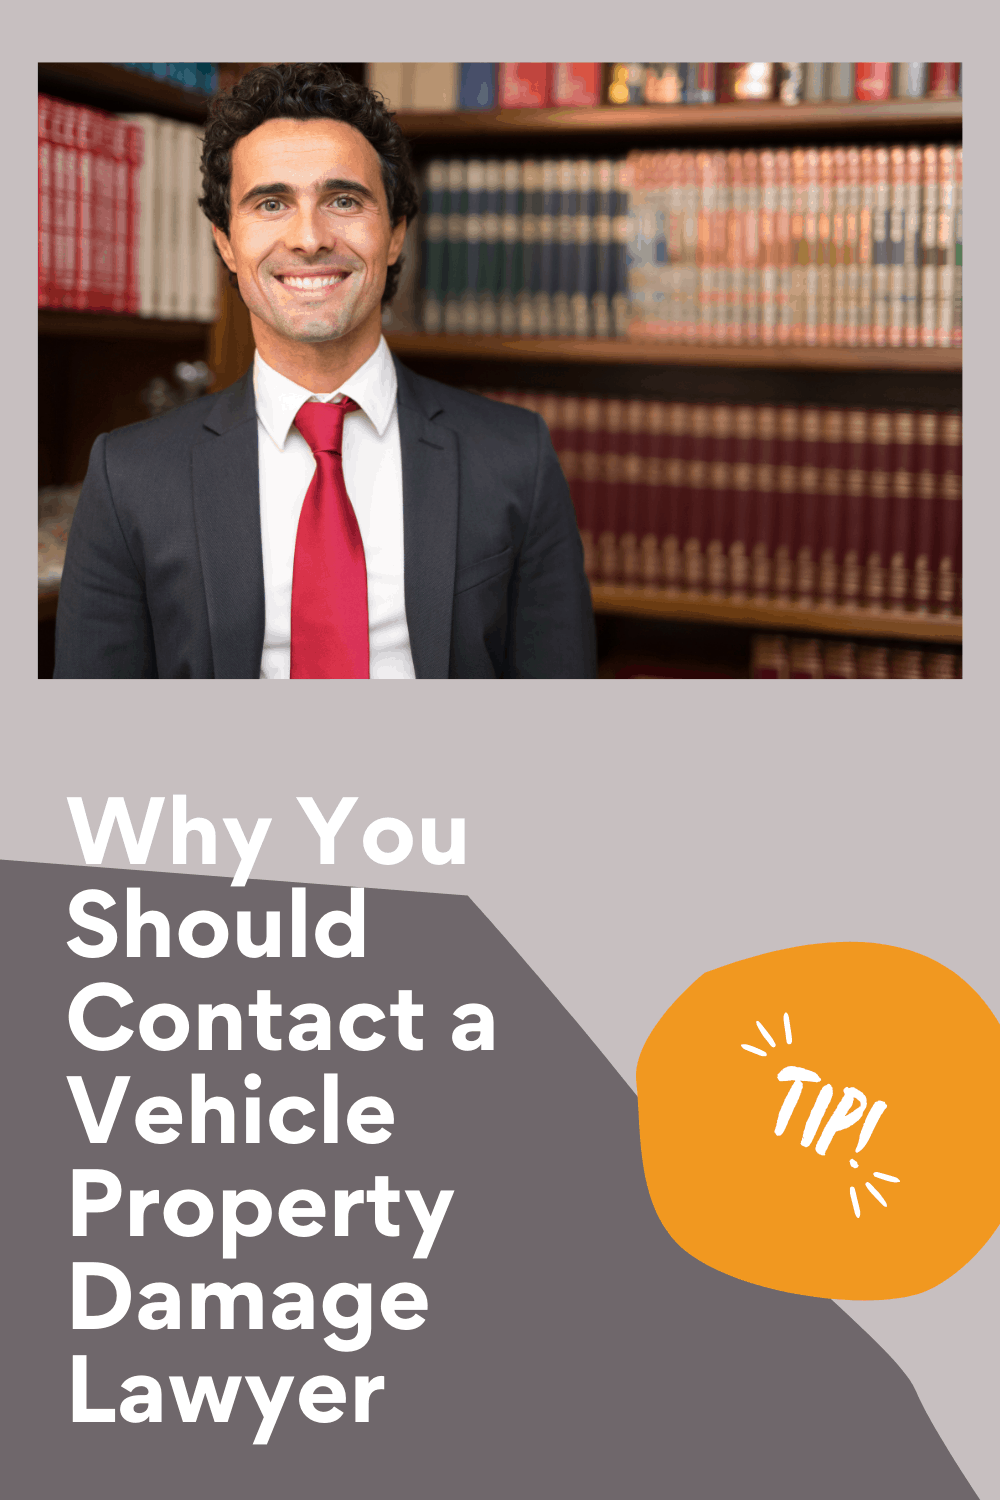 Why You Should Contact a Vehicle Property Damage Lawyer